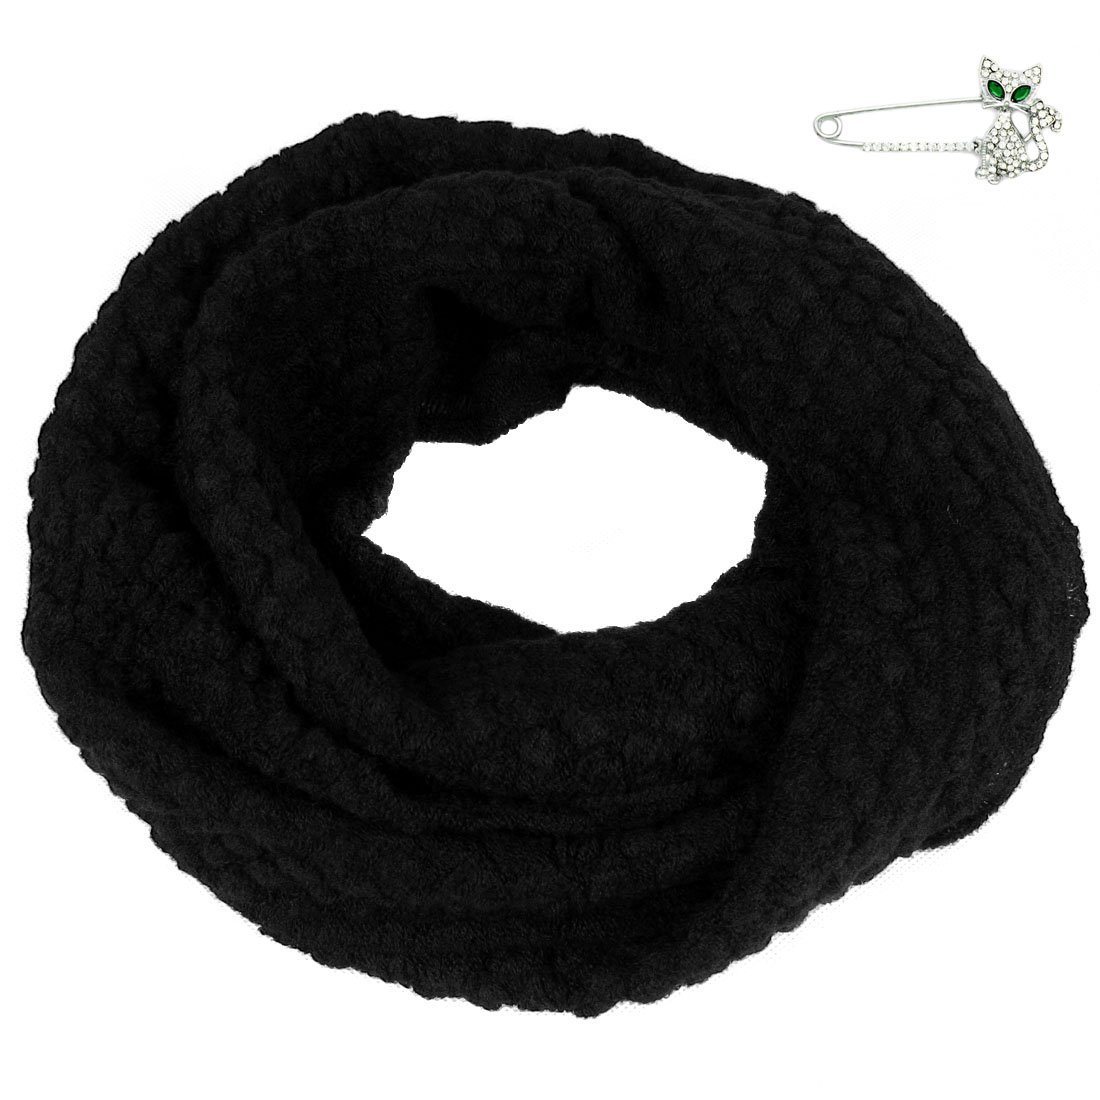 kilofly Knit Neck Warmer Infinity Loop Scarf, Black, with Rhinestone Cat Brooch Pin